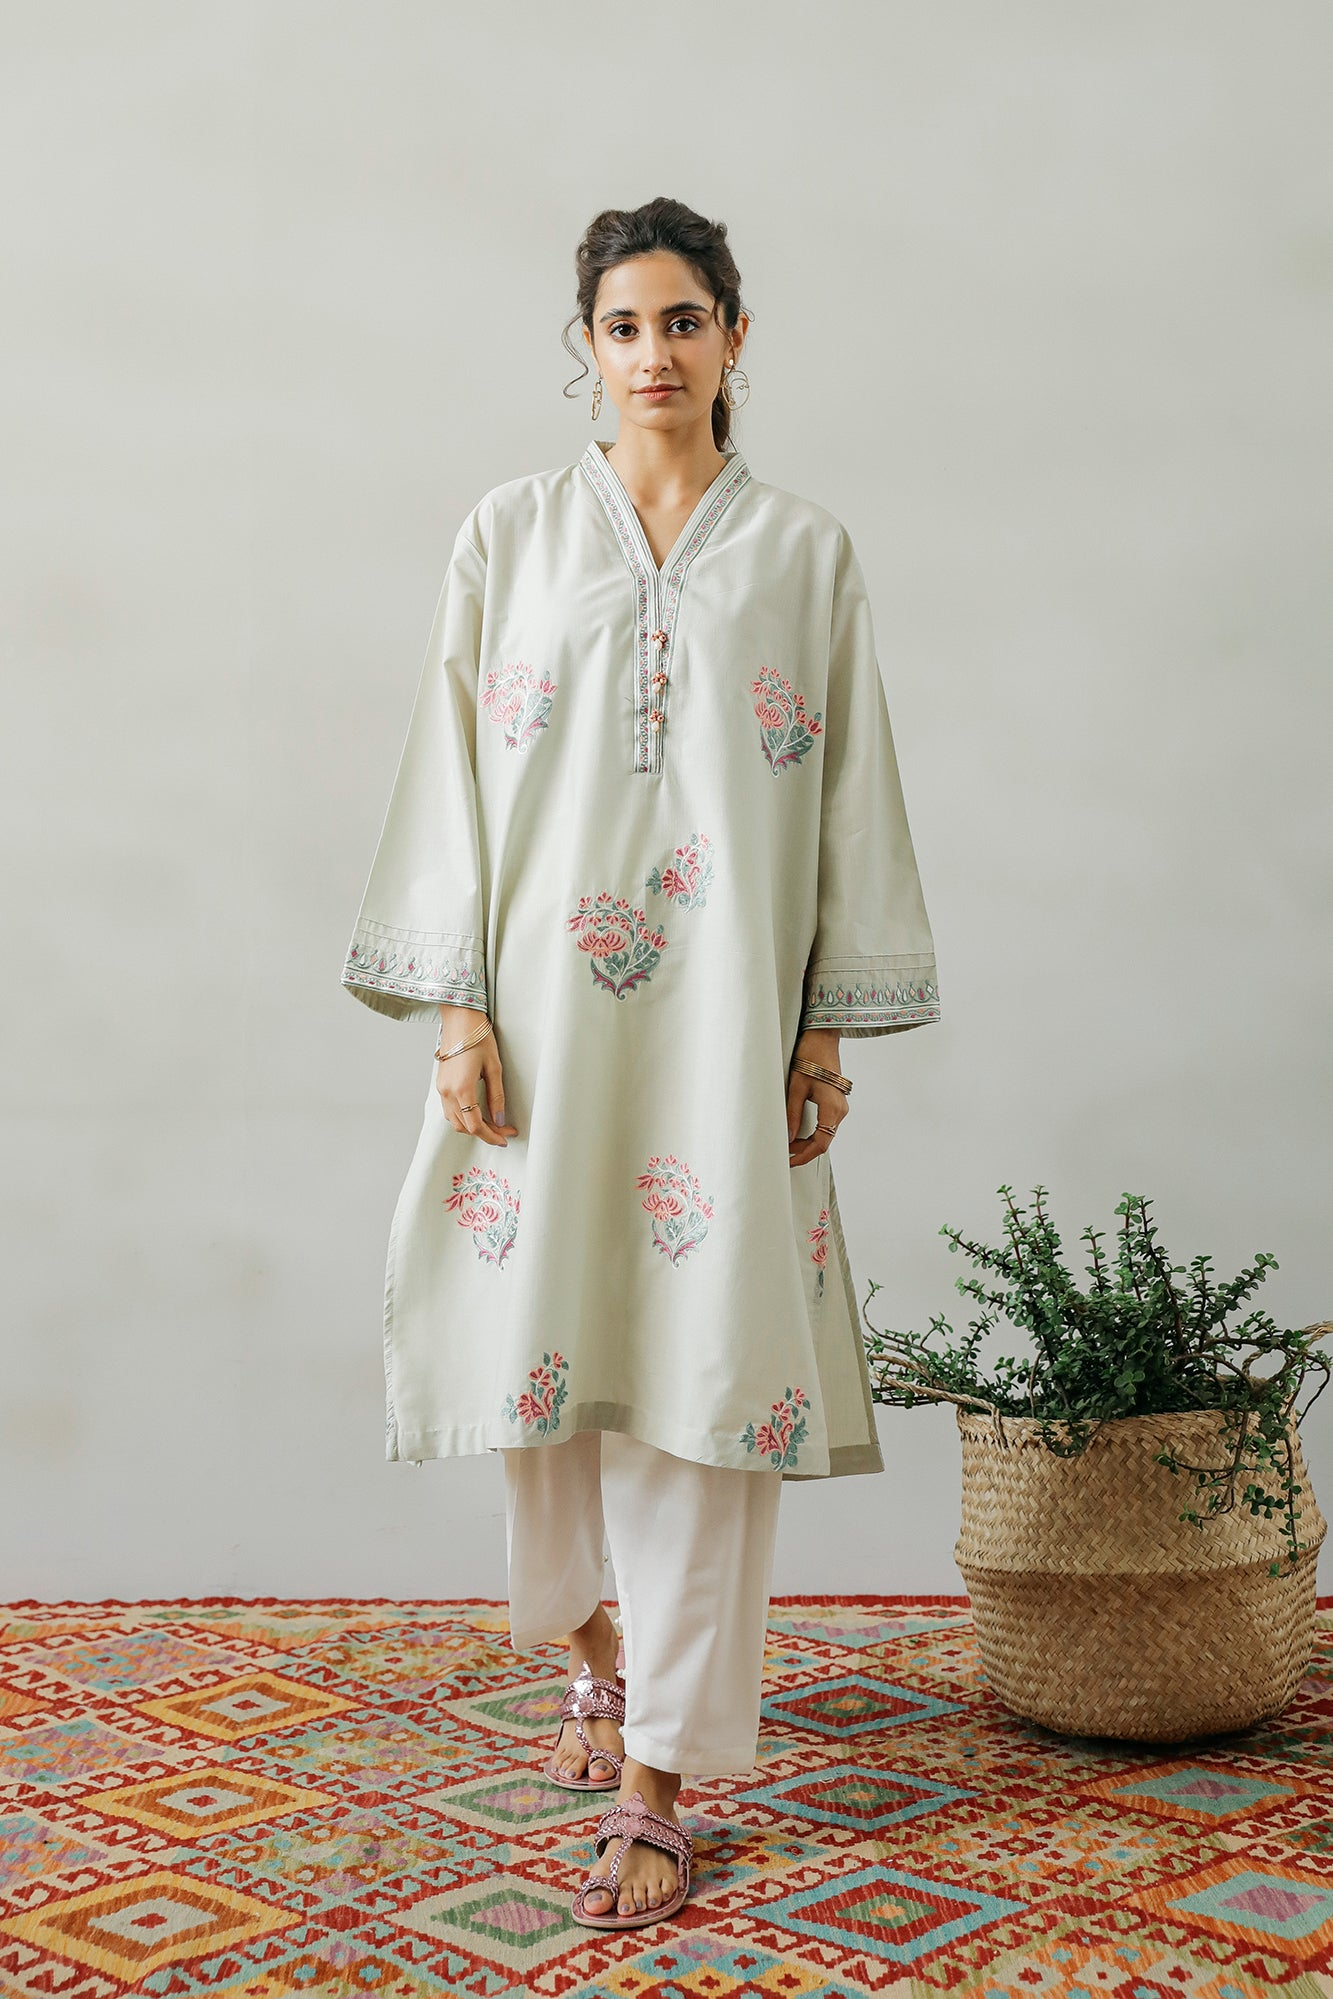 EMBROIDERED SHIRT (WTP111716) - Ethnic by Outfitters